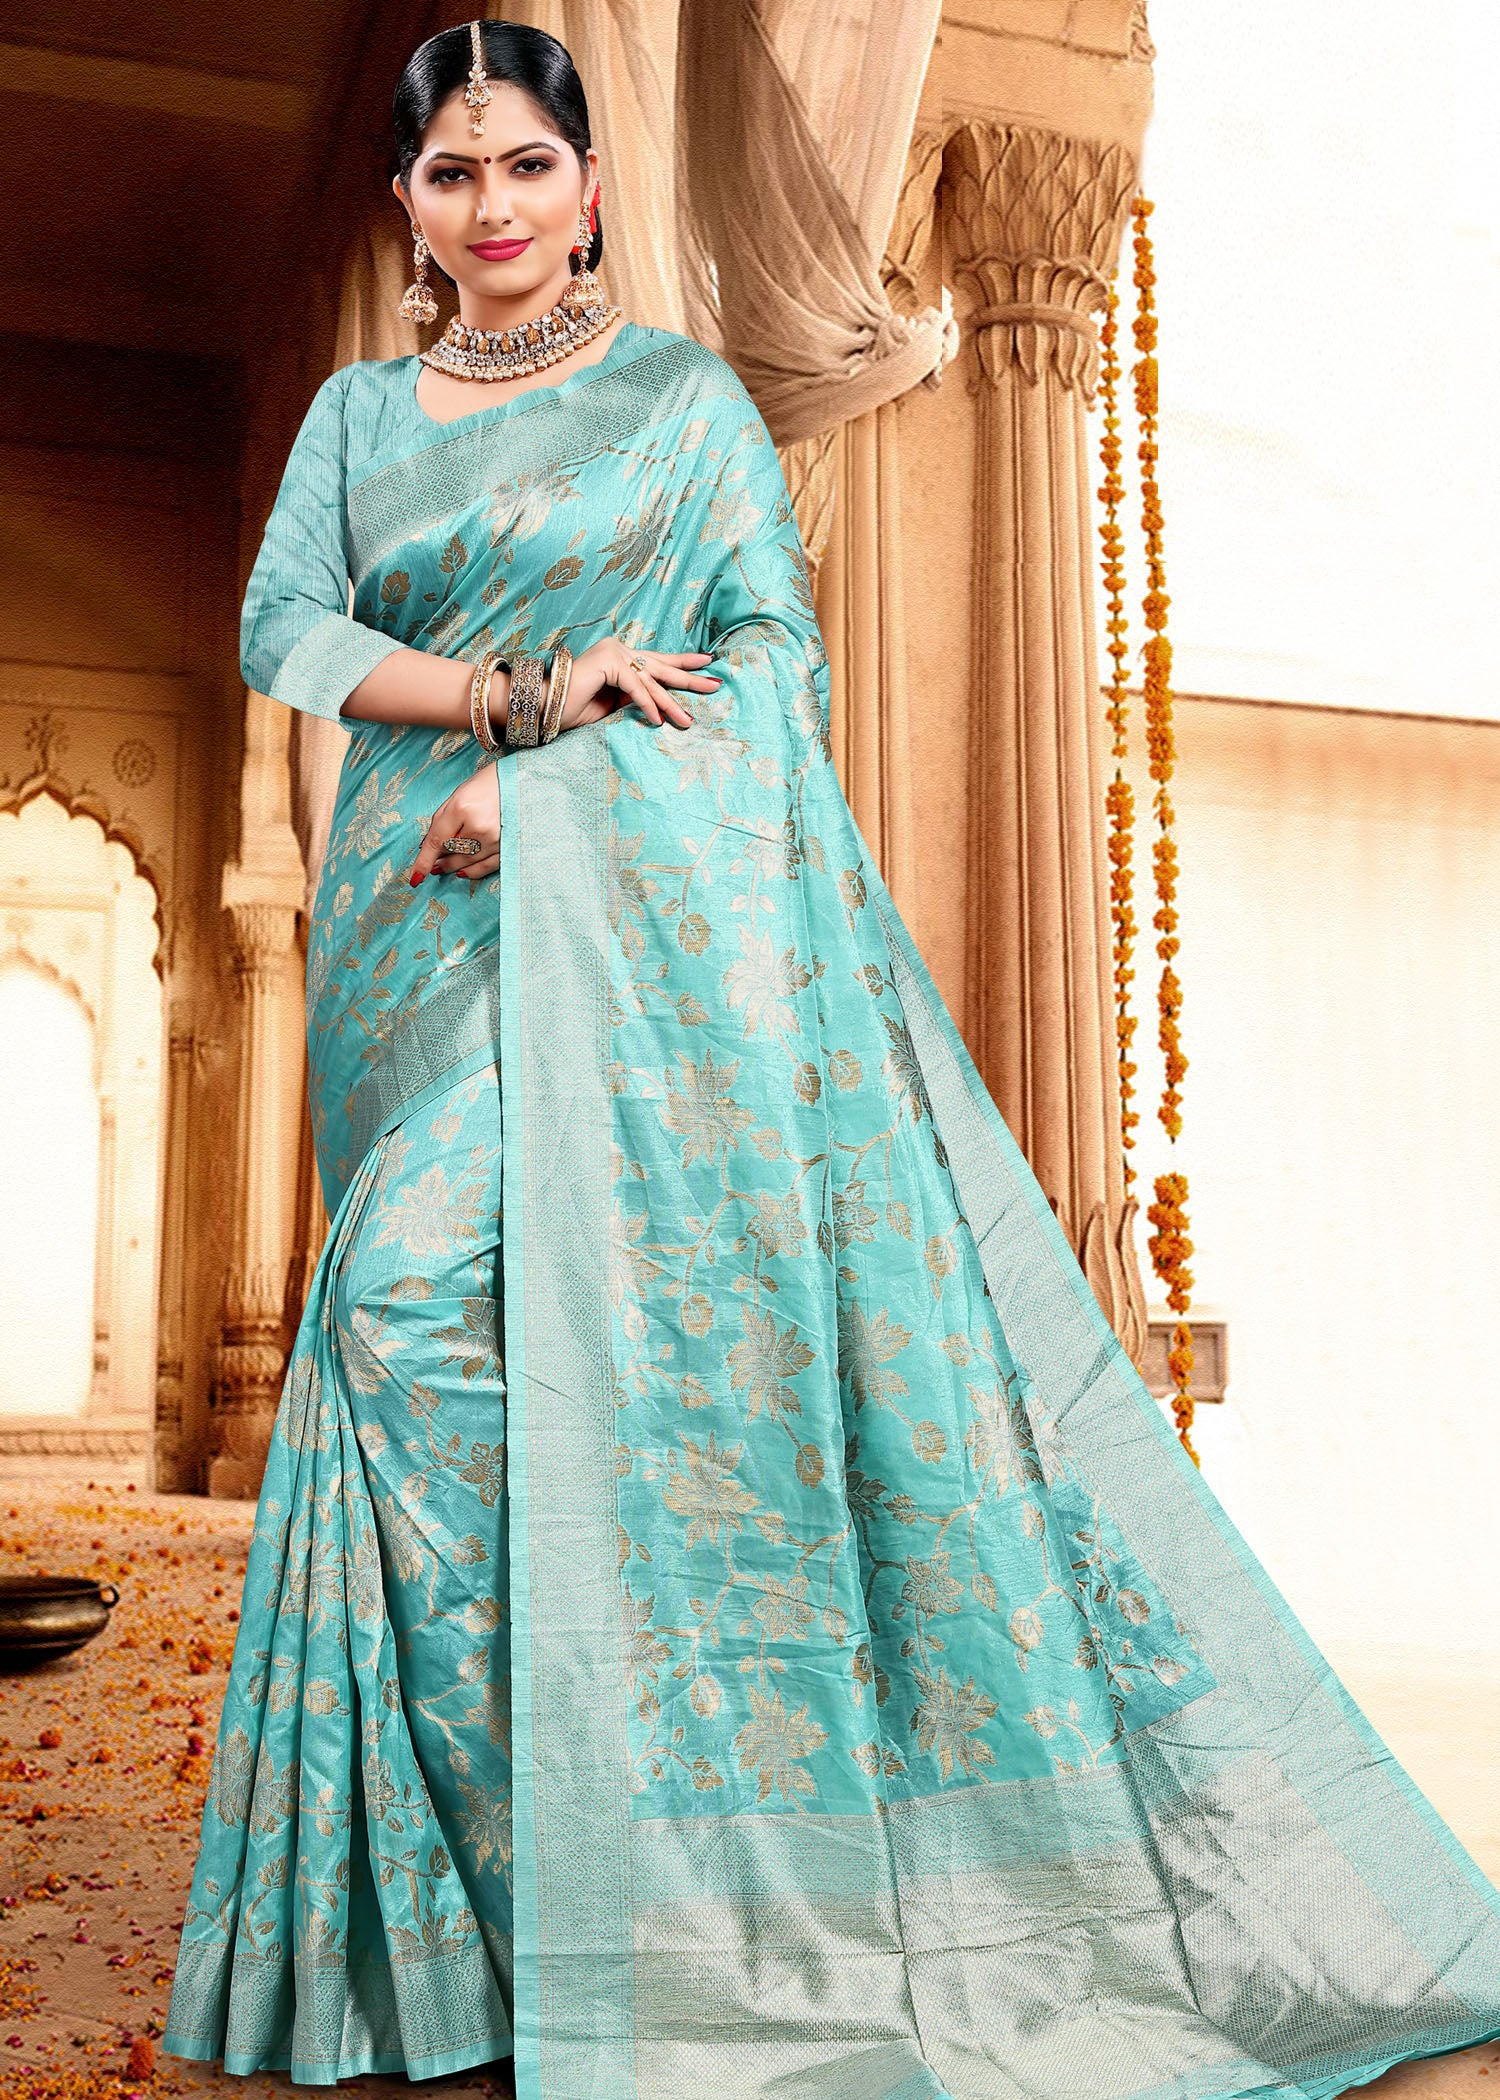 Light Blue Chanderi Silk Saree with Flower Zari Weaving All Over